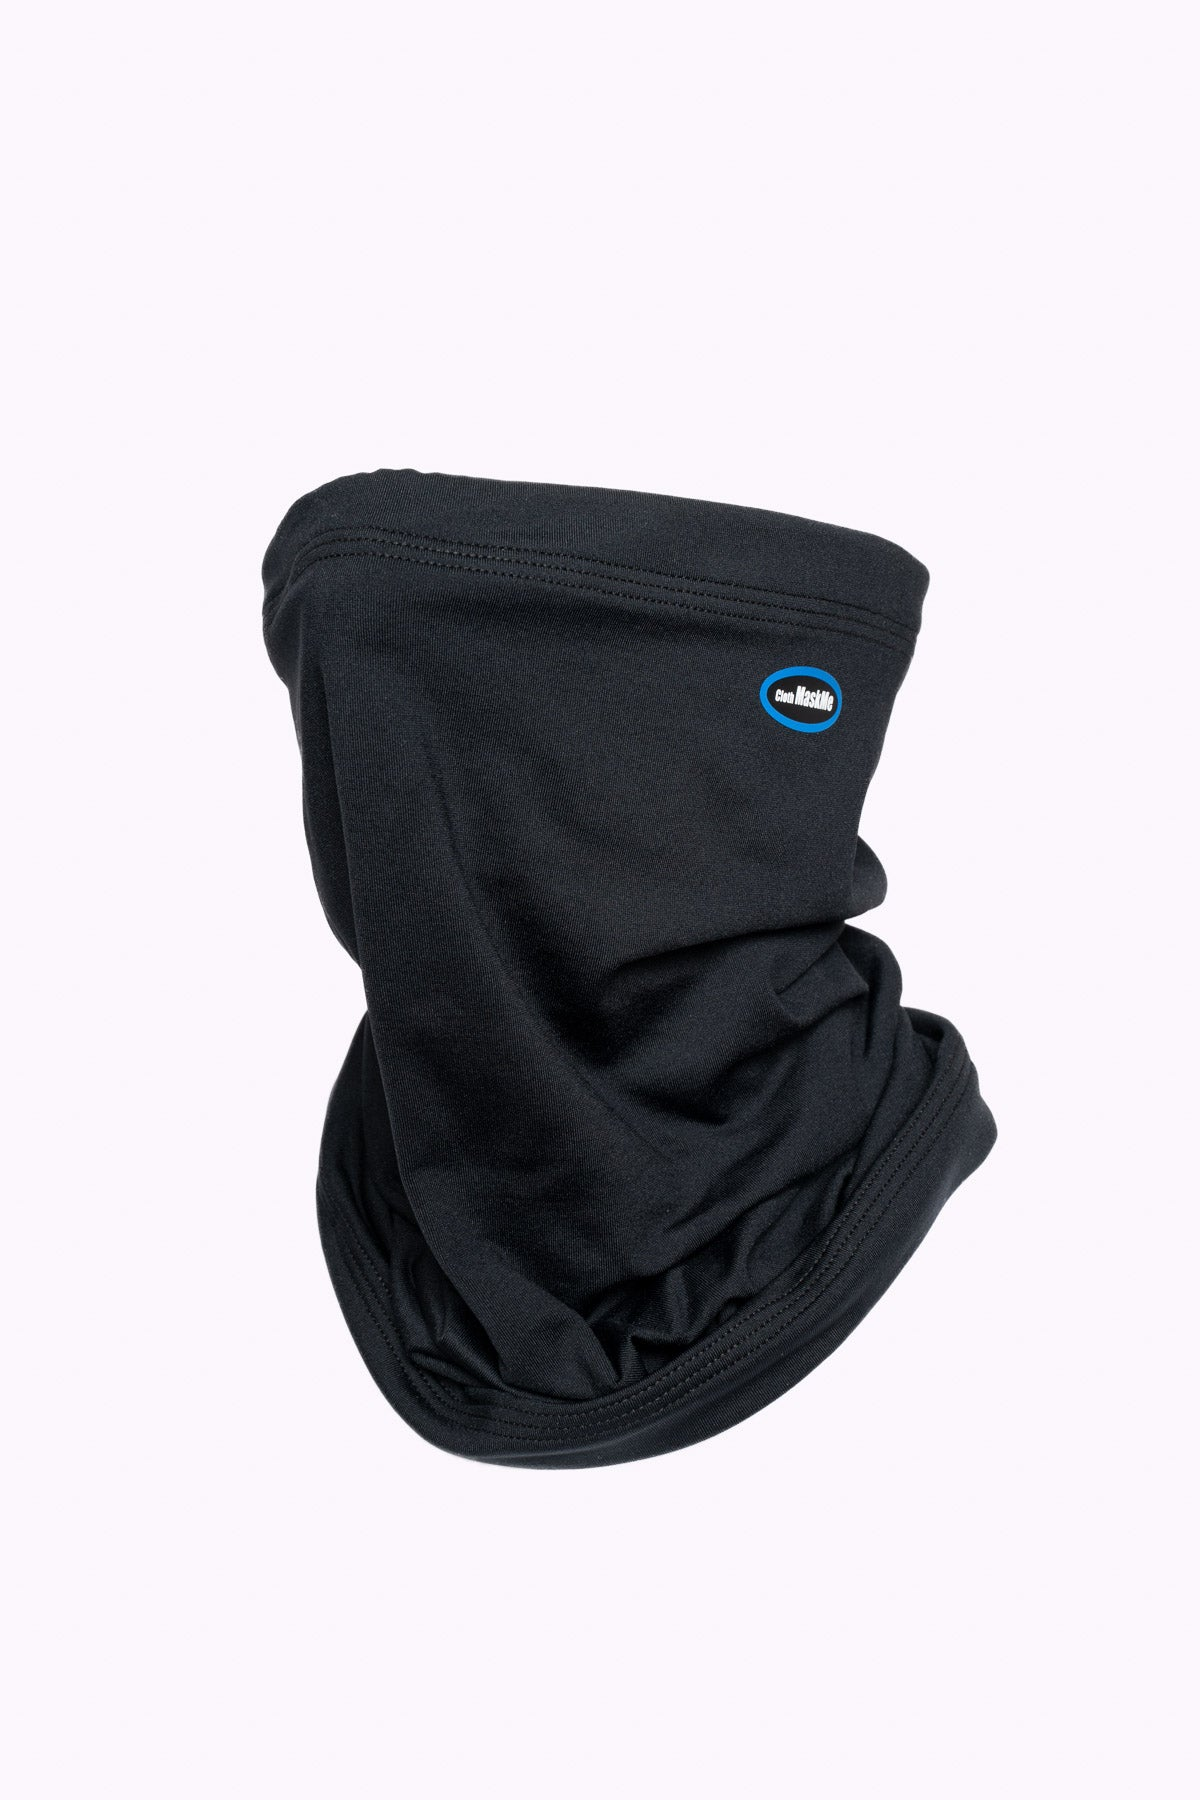 Fitted Black Adjustable Layered Snoods